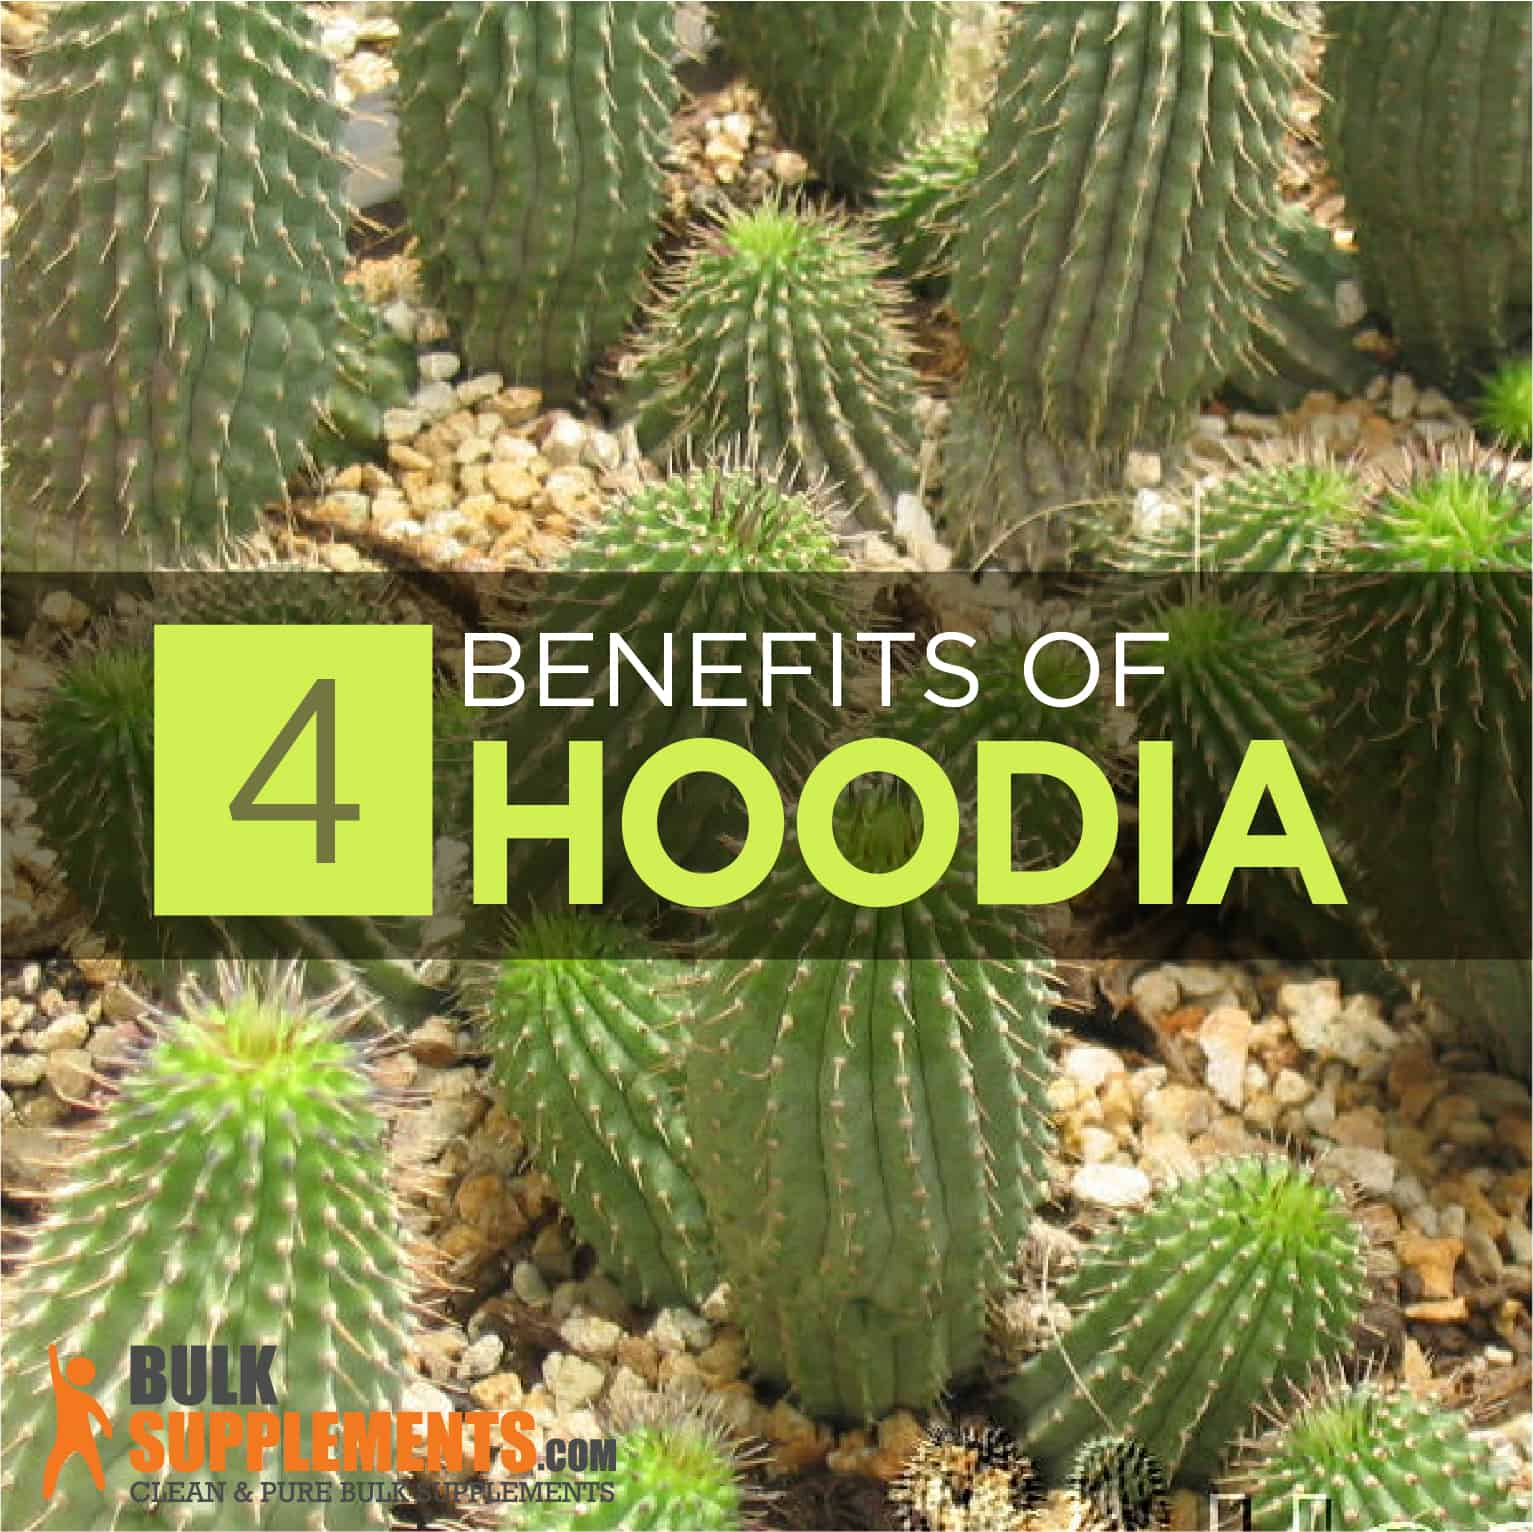 Hoodia Benefits Side Effects Dosage Bulksupplements Com